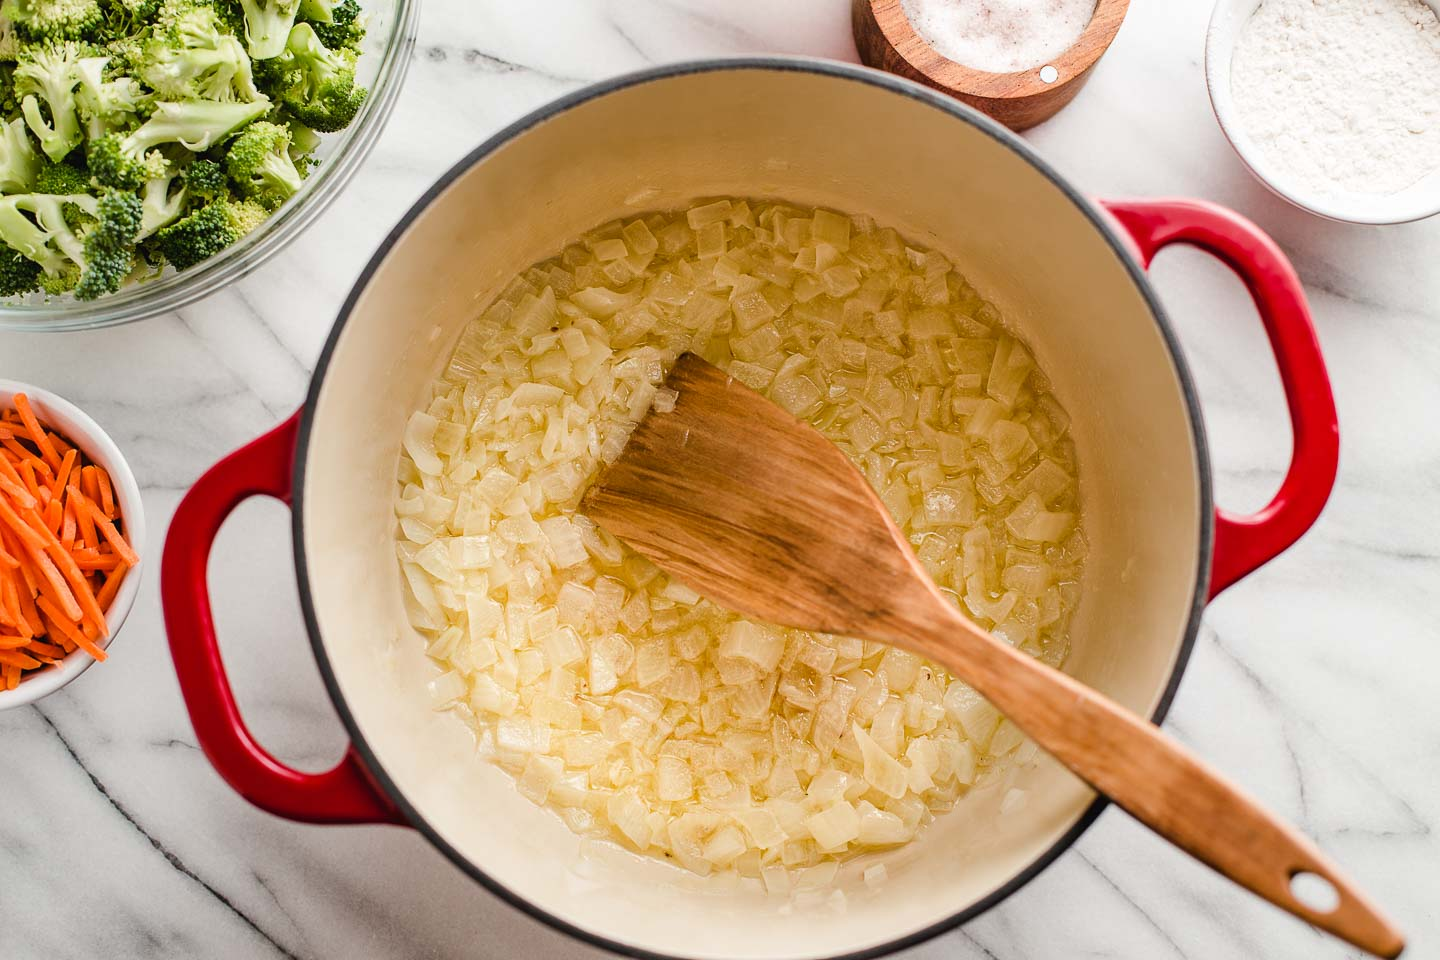 Onions sauted in butter.